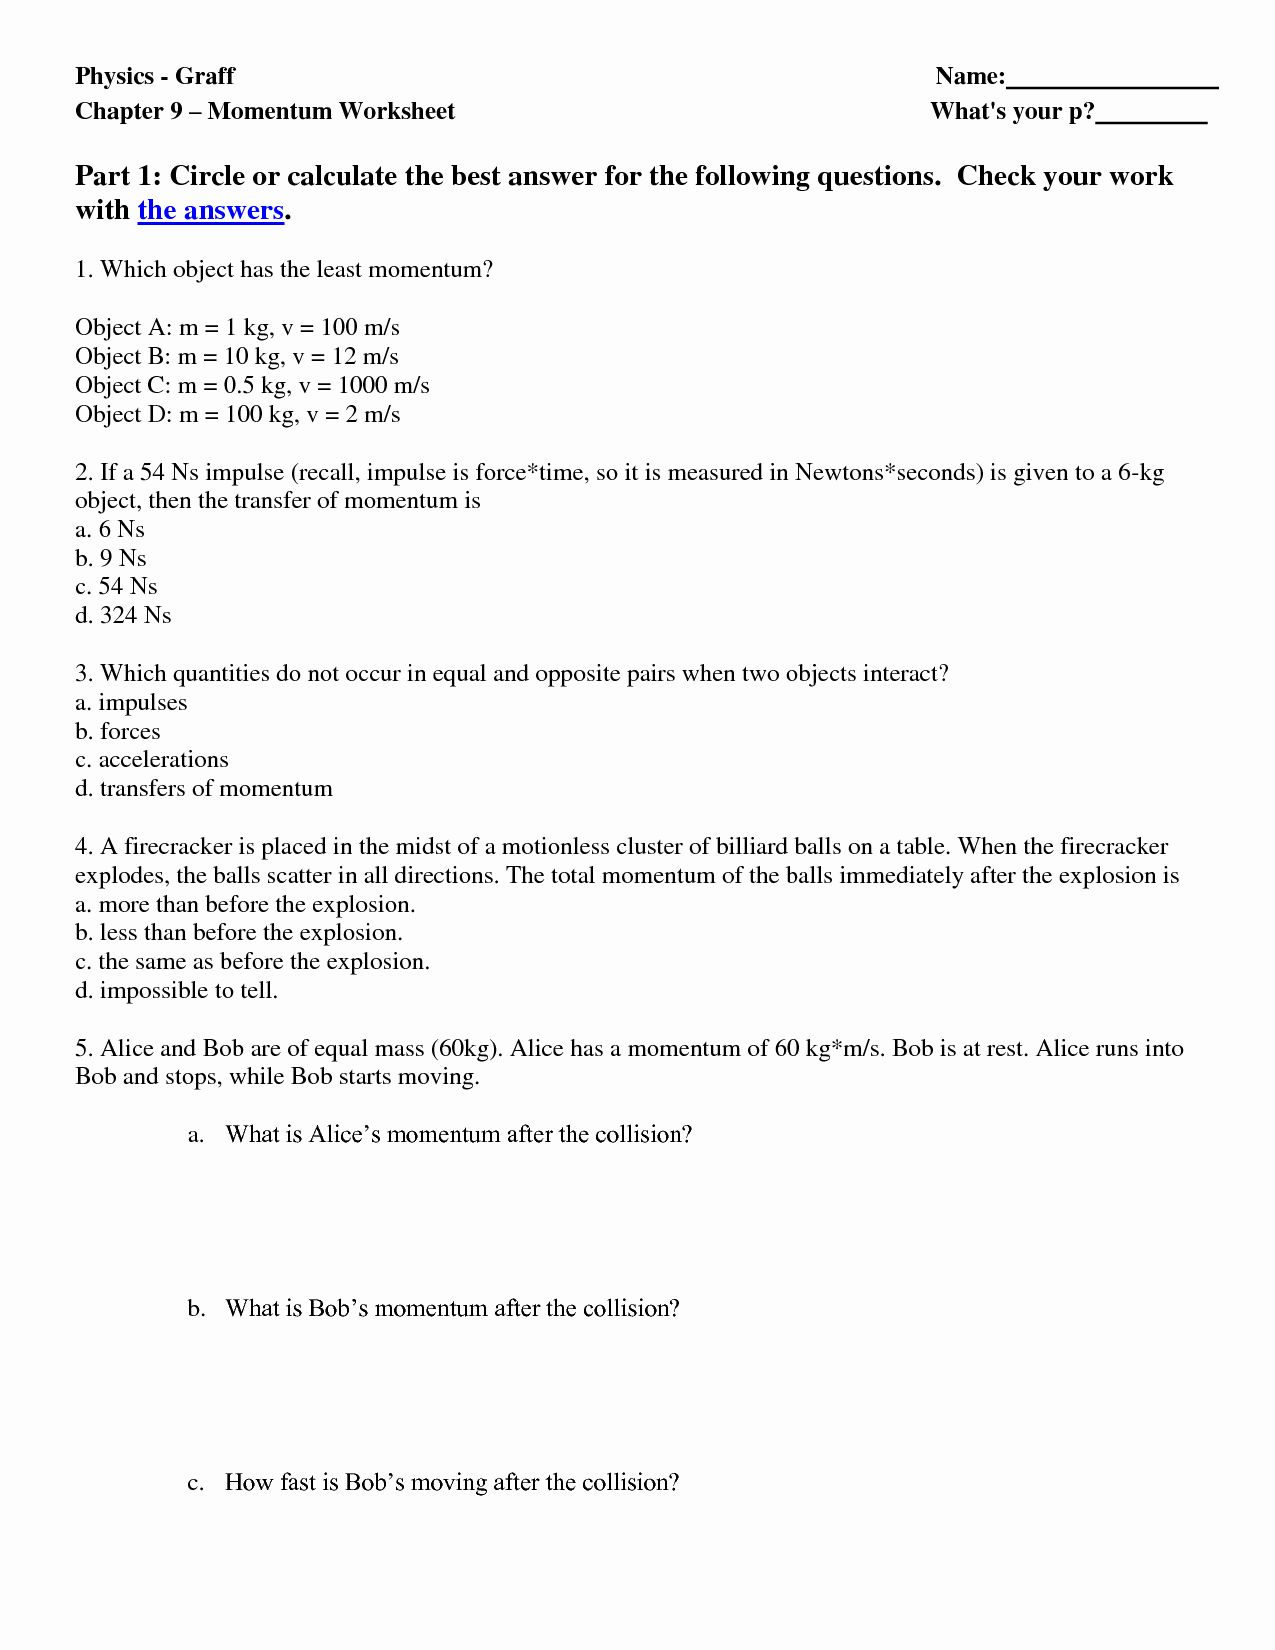 50 Energy Transformation Worksheet Answer Key In